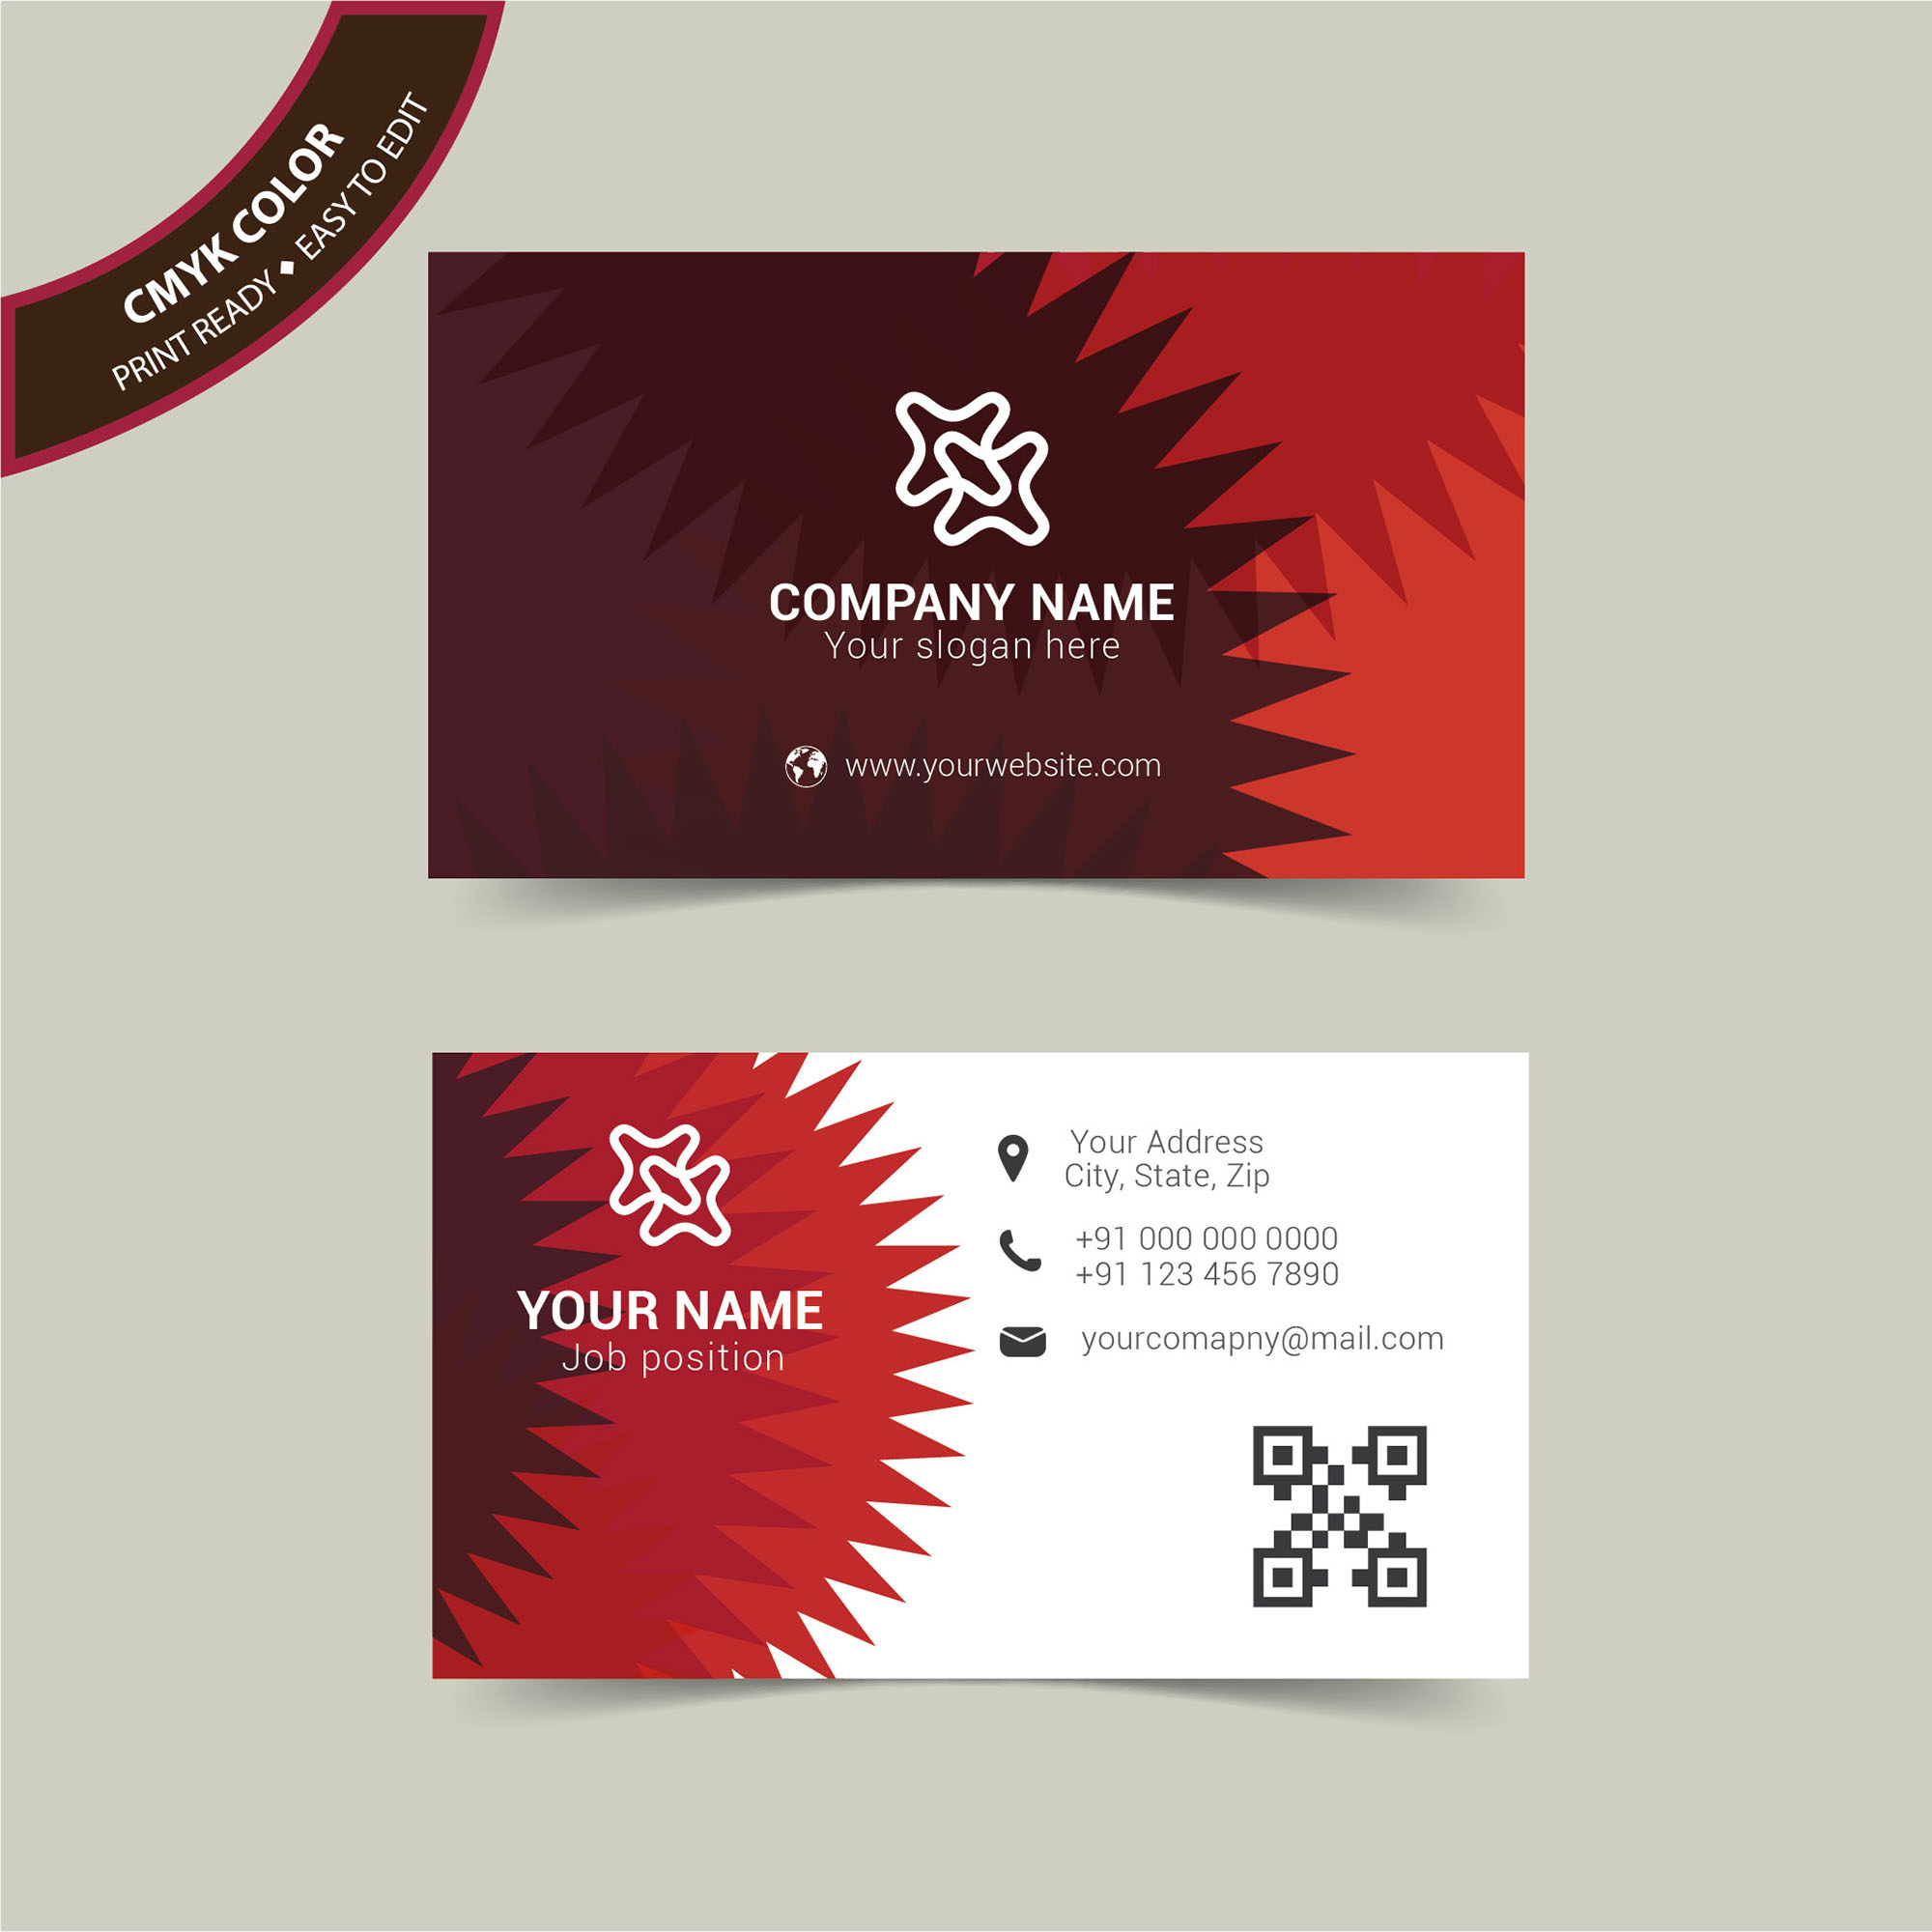 Abstract professional business card free download wisxi business card business cards business card design business card template design templates fbccfo Image collections